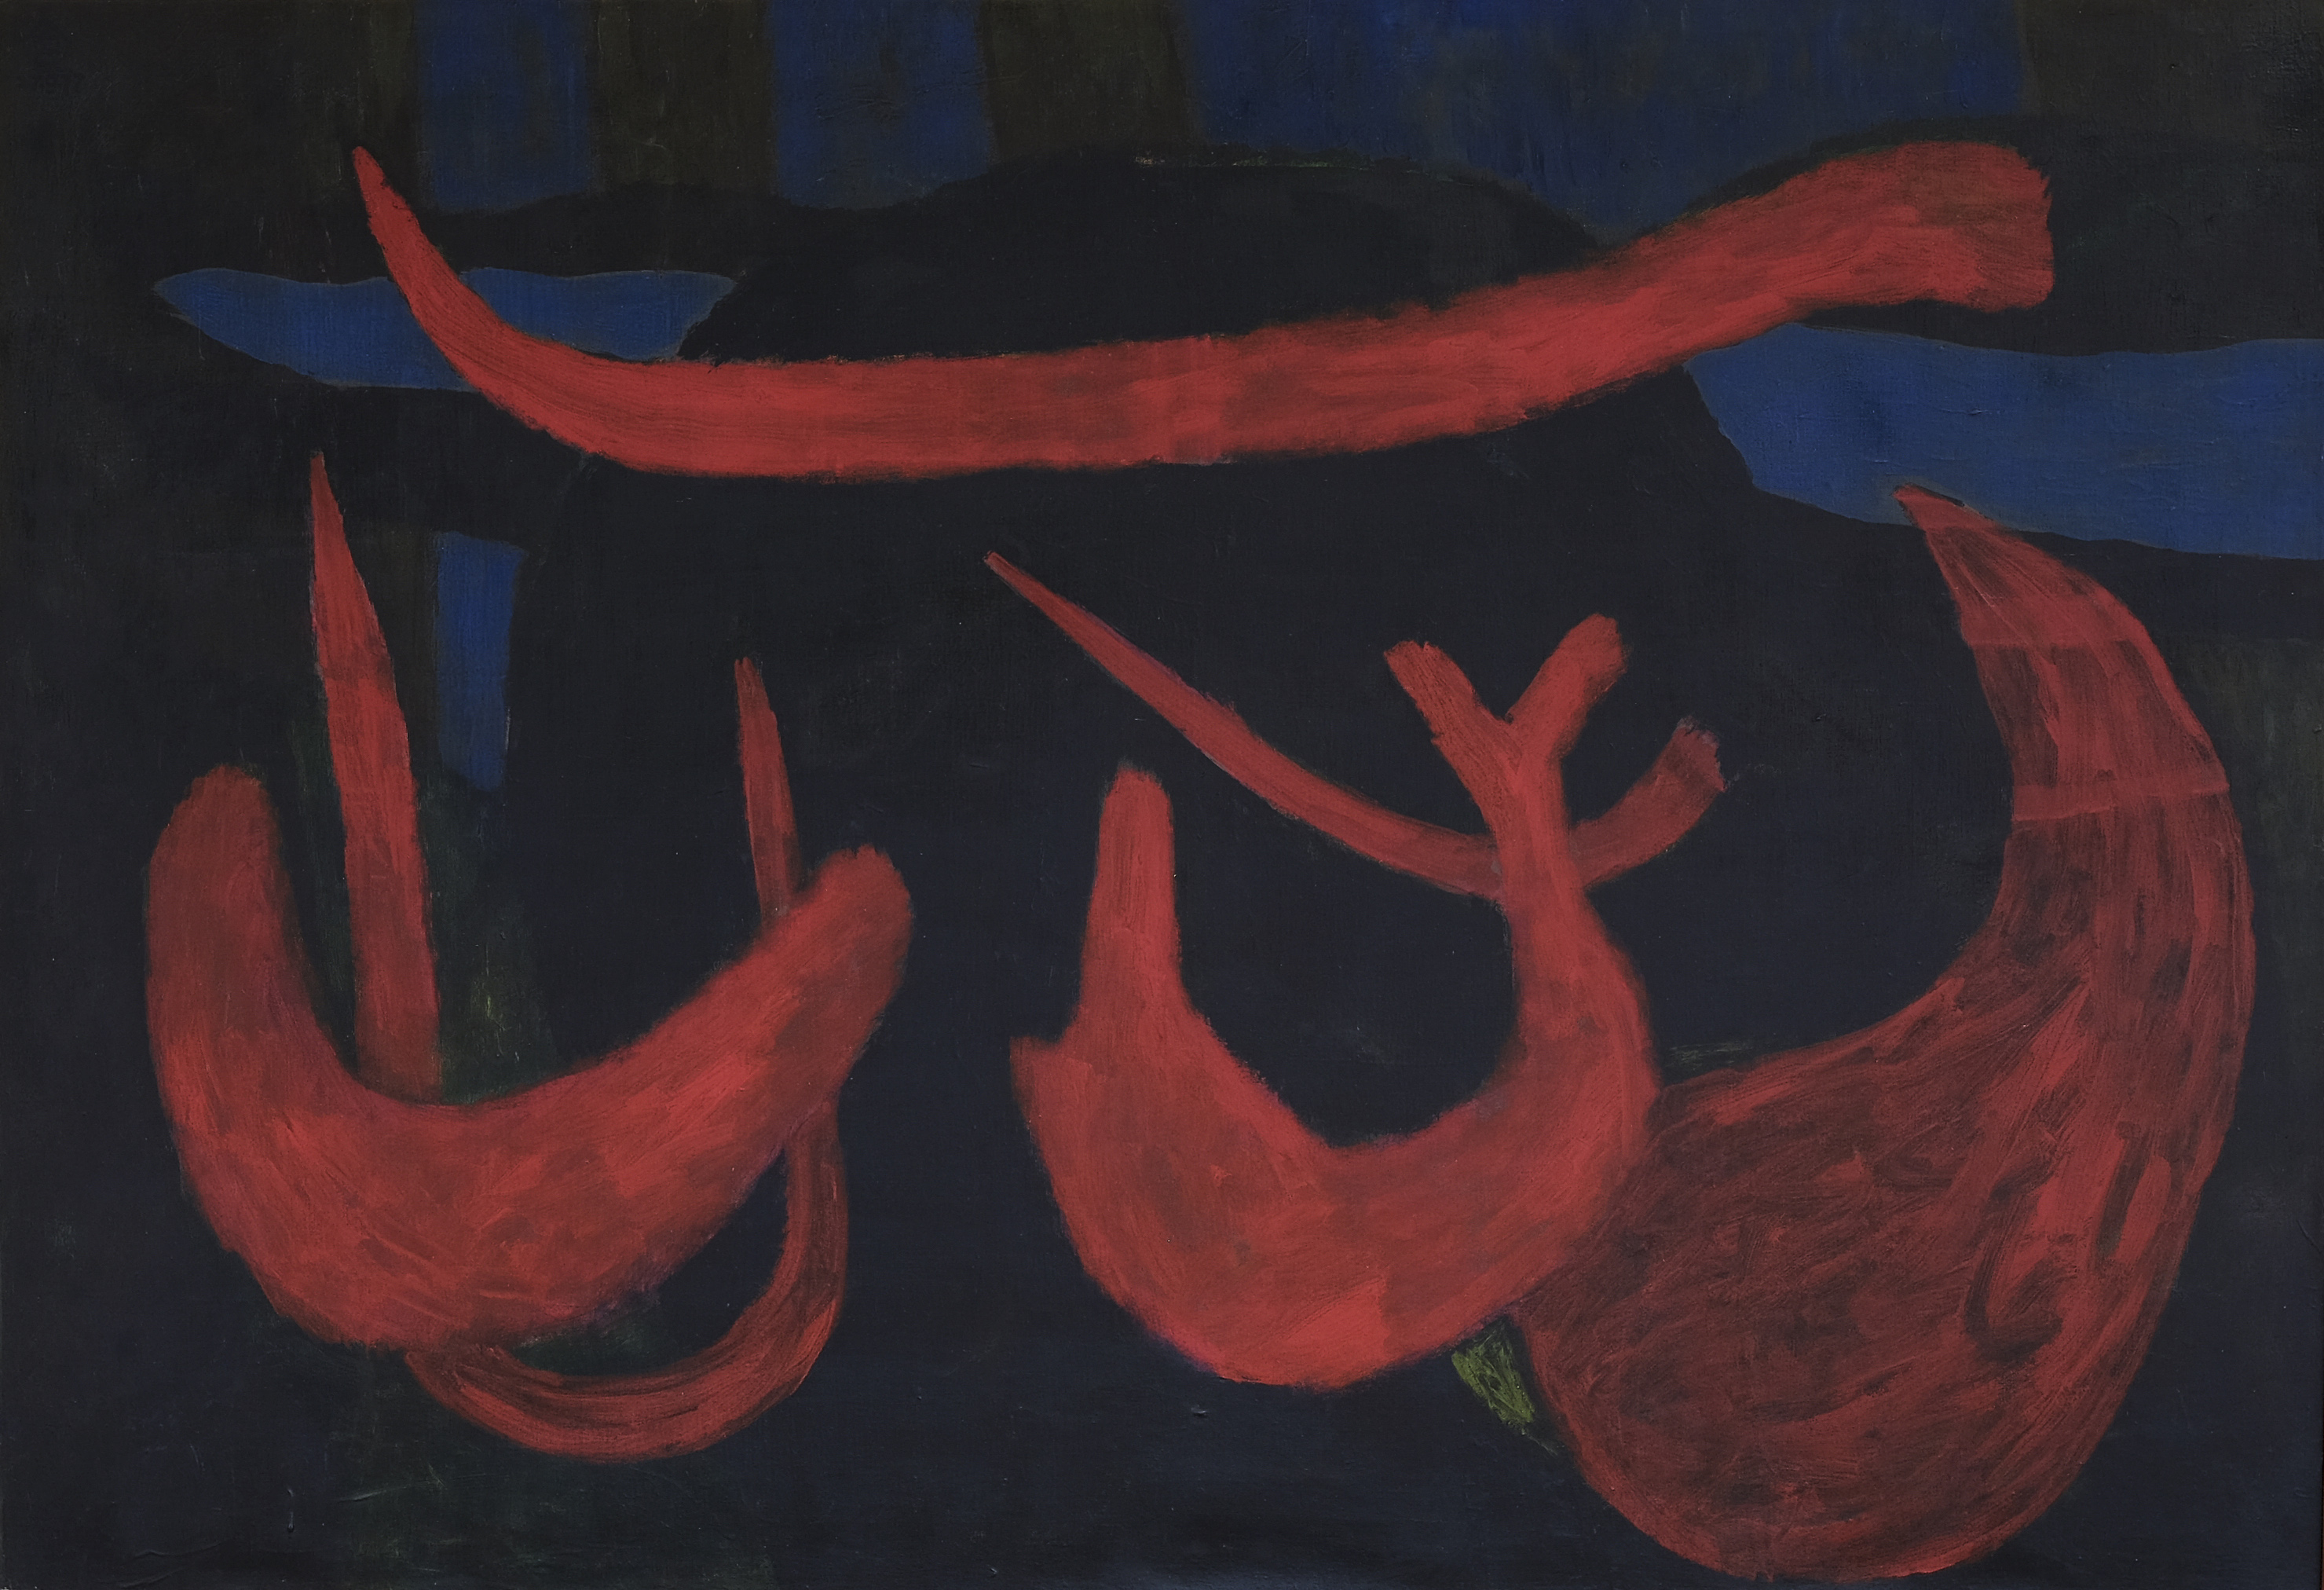 Nashar, Nyayian Malam (Night Song), oil on canvas, 88 x 127 cm, 1977